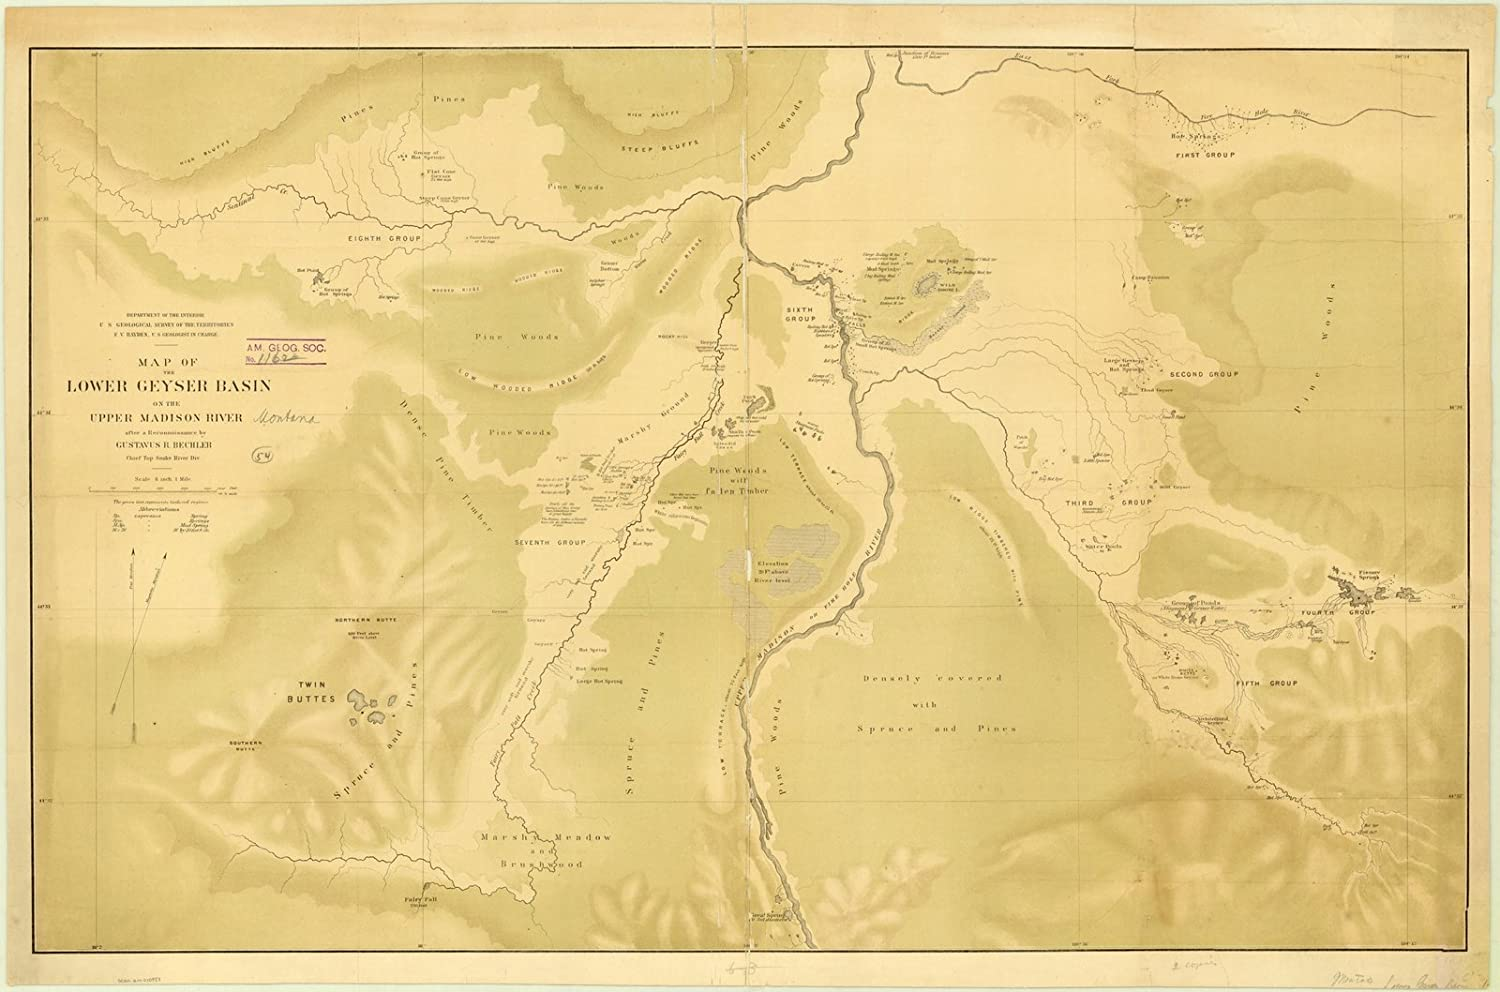 Amazon.com: Historic Map | Geyser Basin, Montana 1872 | Map ... on firehole river map, waukesha county river map, tuscumbia river map, albion river map, gallatin river map, mishawaka river map, seattle river map, cannonball river map, fluvanna river map, maries river map, yorktown river map, hebgen lake map, eugene river map, montana rivers map, st. augustine river map, salem river map, poquoson river map, folsom river map, sunflower river map, quad cities river map,